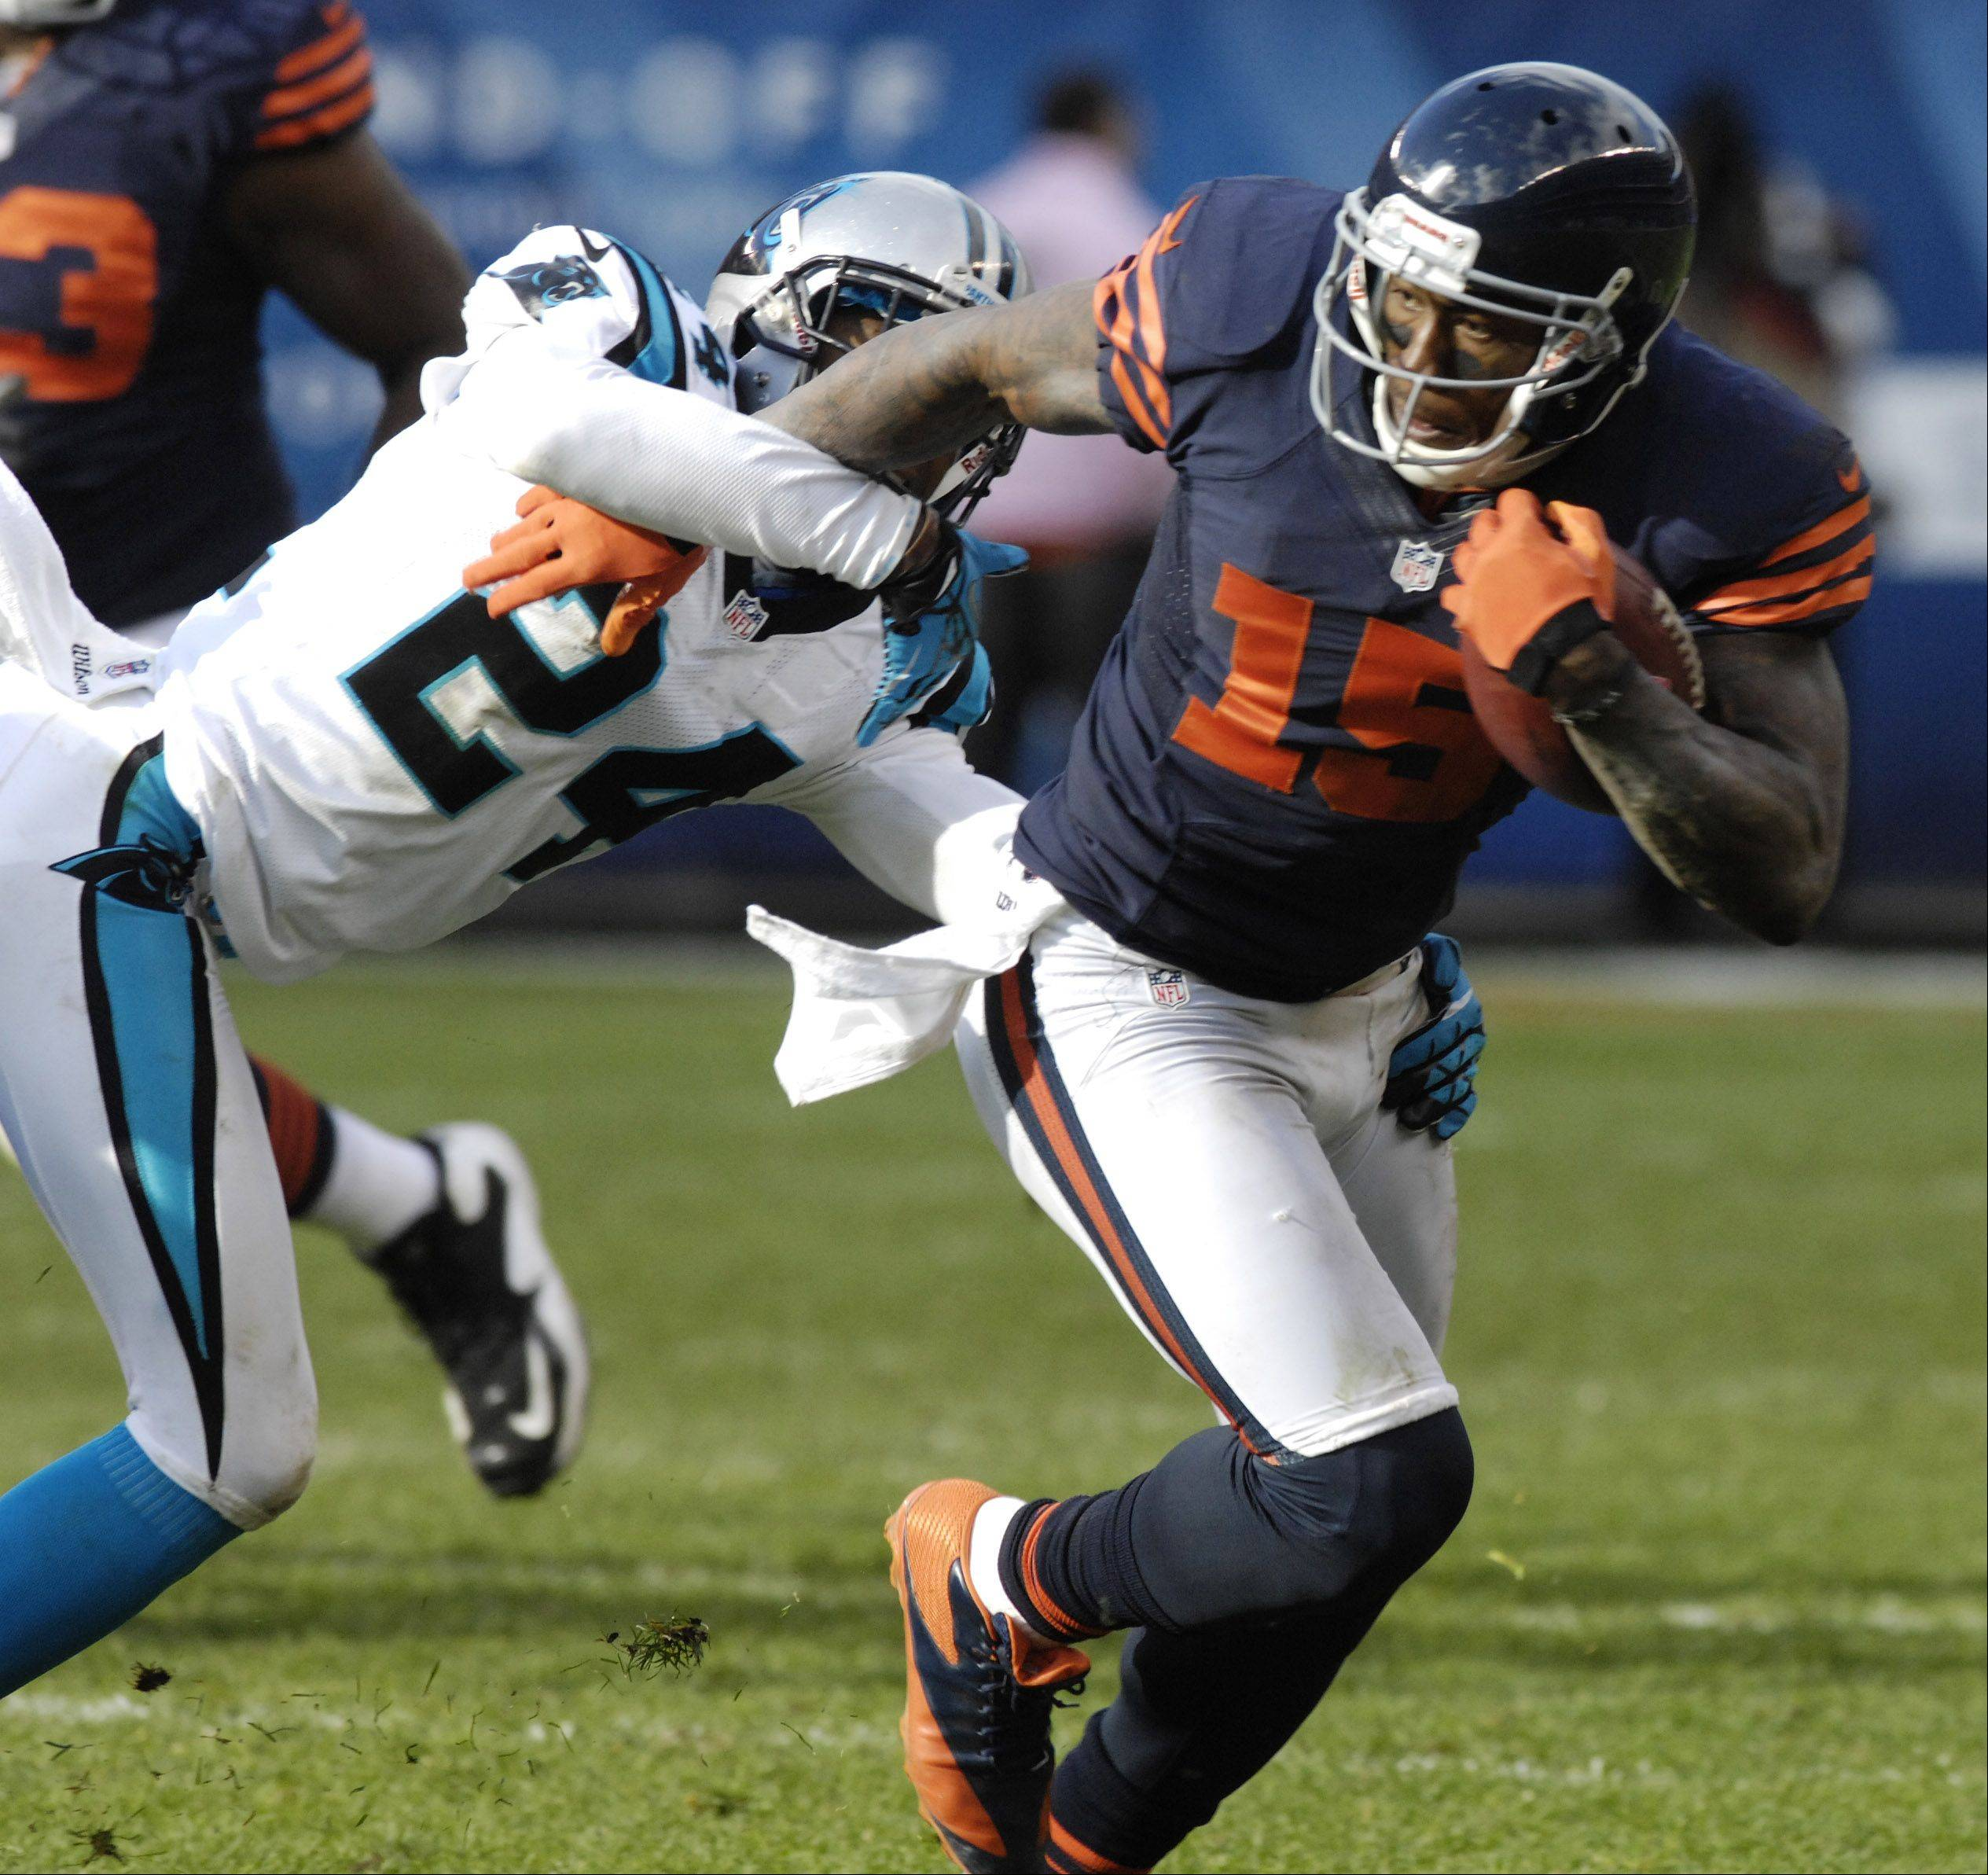 Bears' Cutler saving his best for last